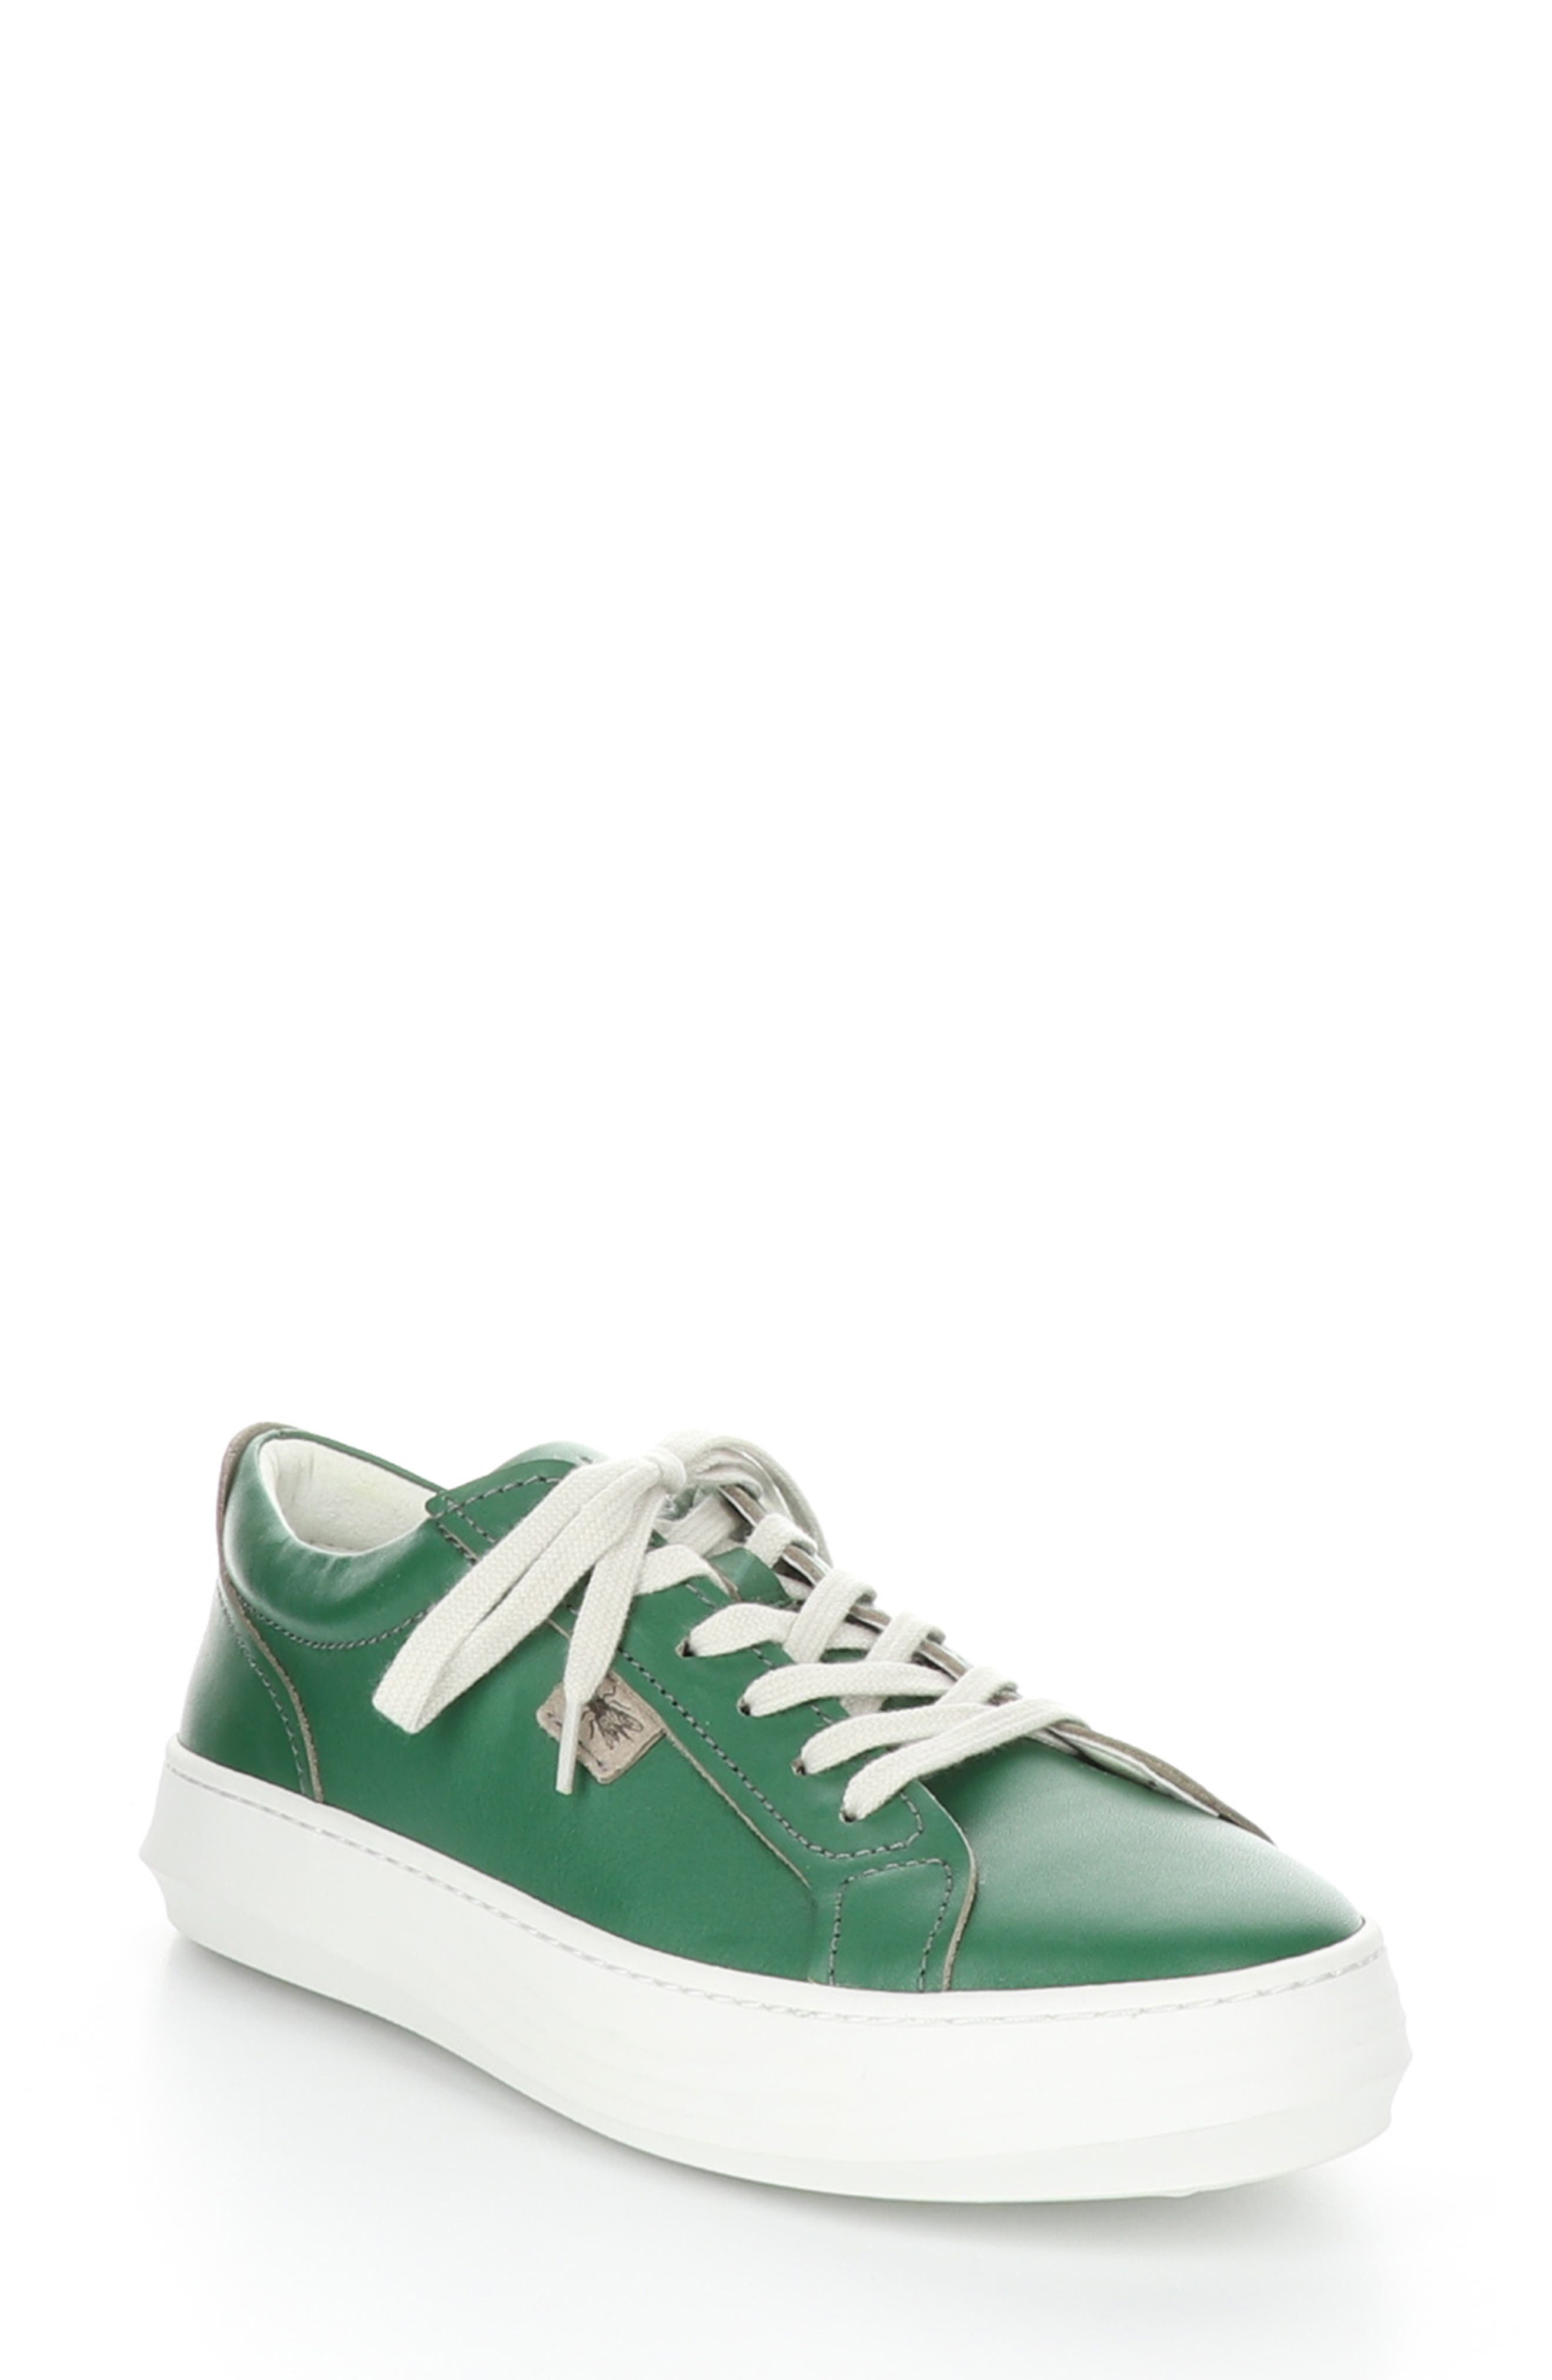 A padded collar and footbed add to the comfort of an easy lace-up sneaker polished in smooth leather. Style Name: Fly London Cive Sneaker (Women). Style Number: 6002343. Available in stores.